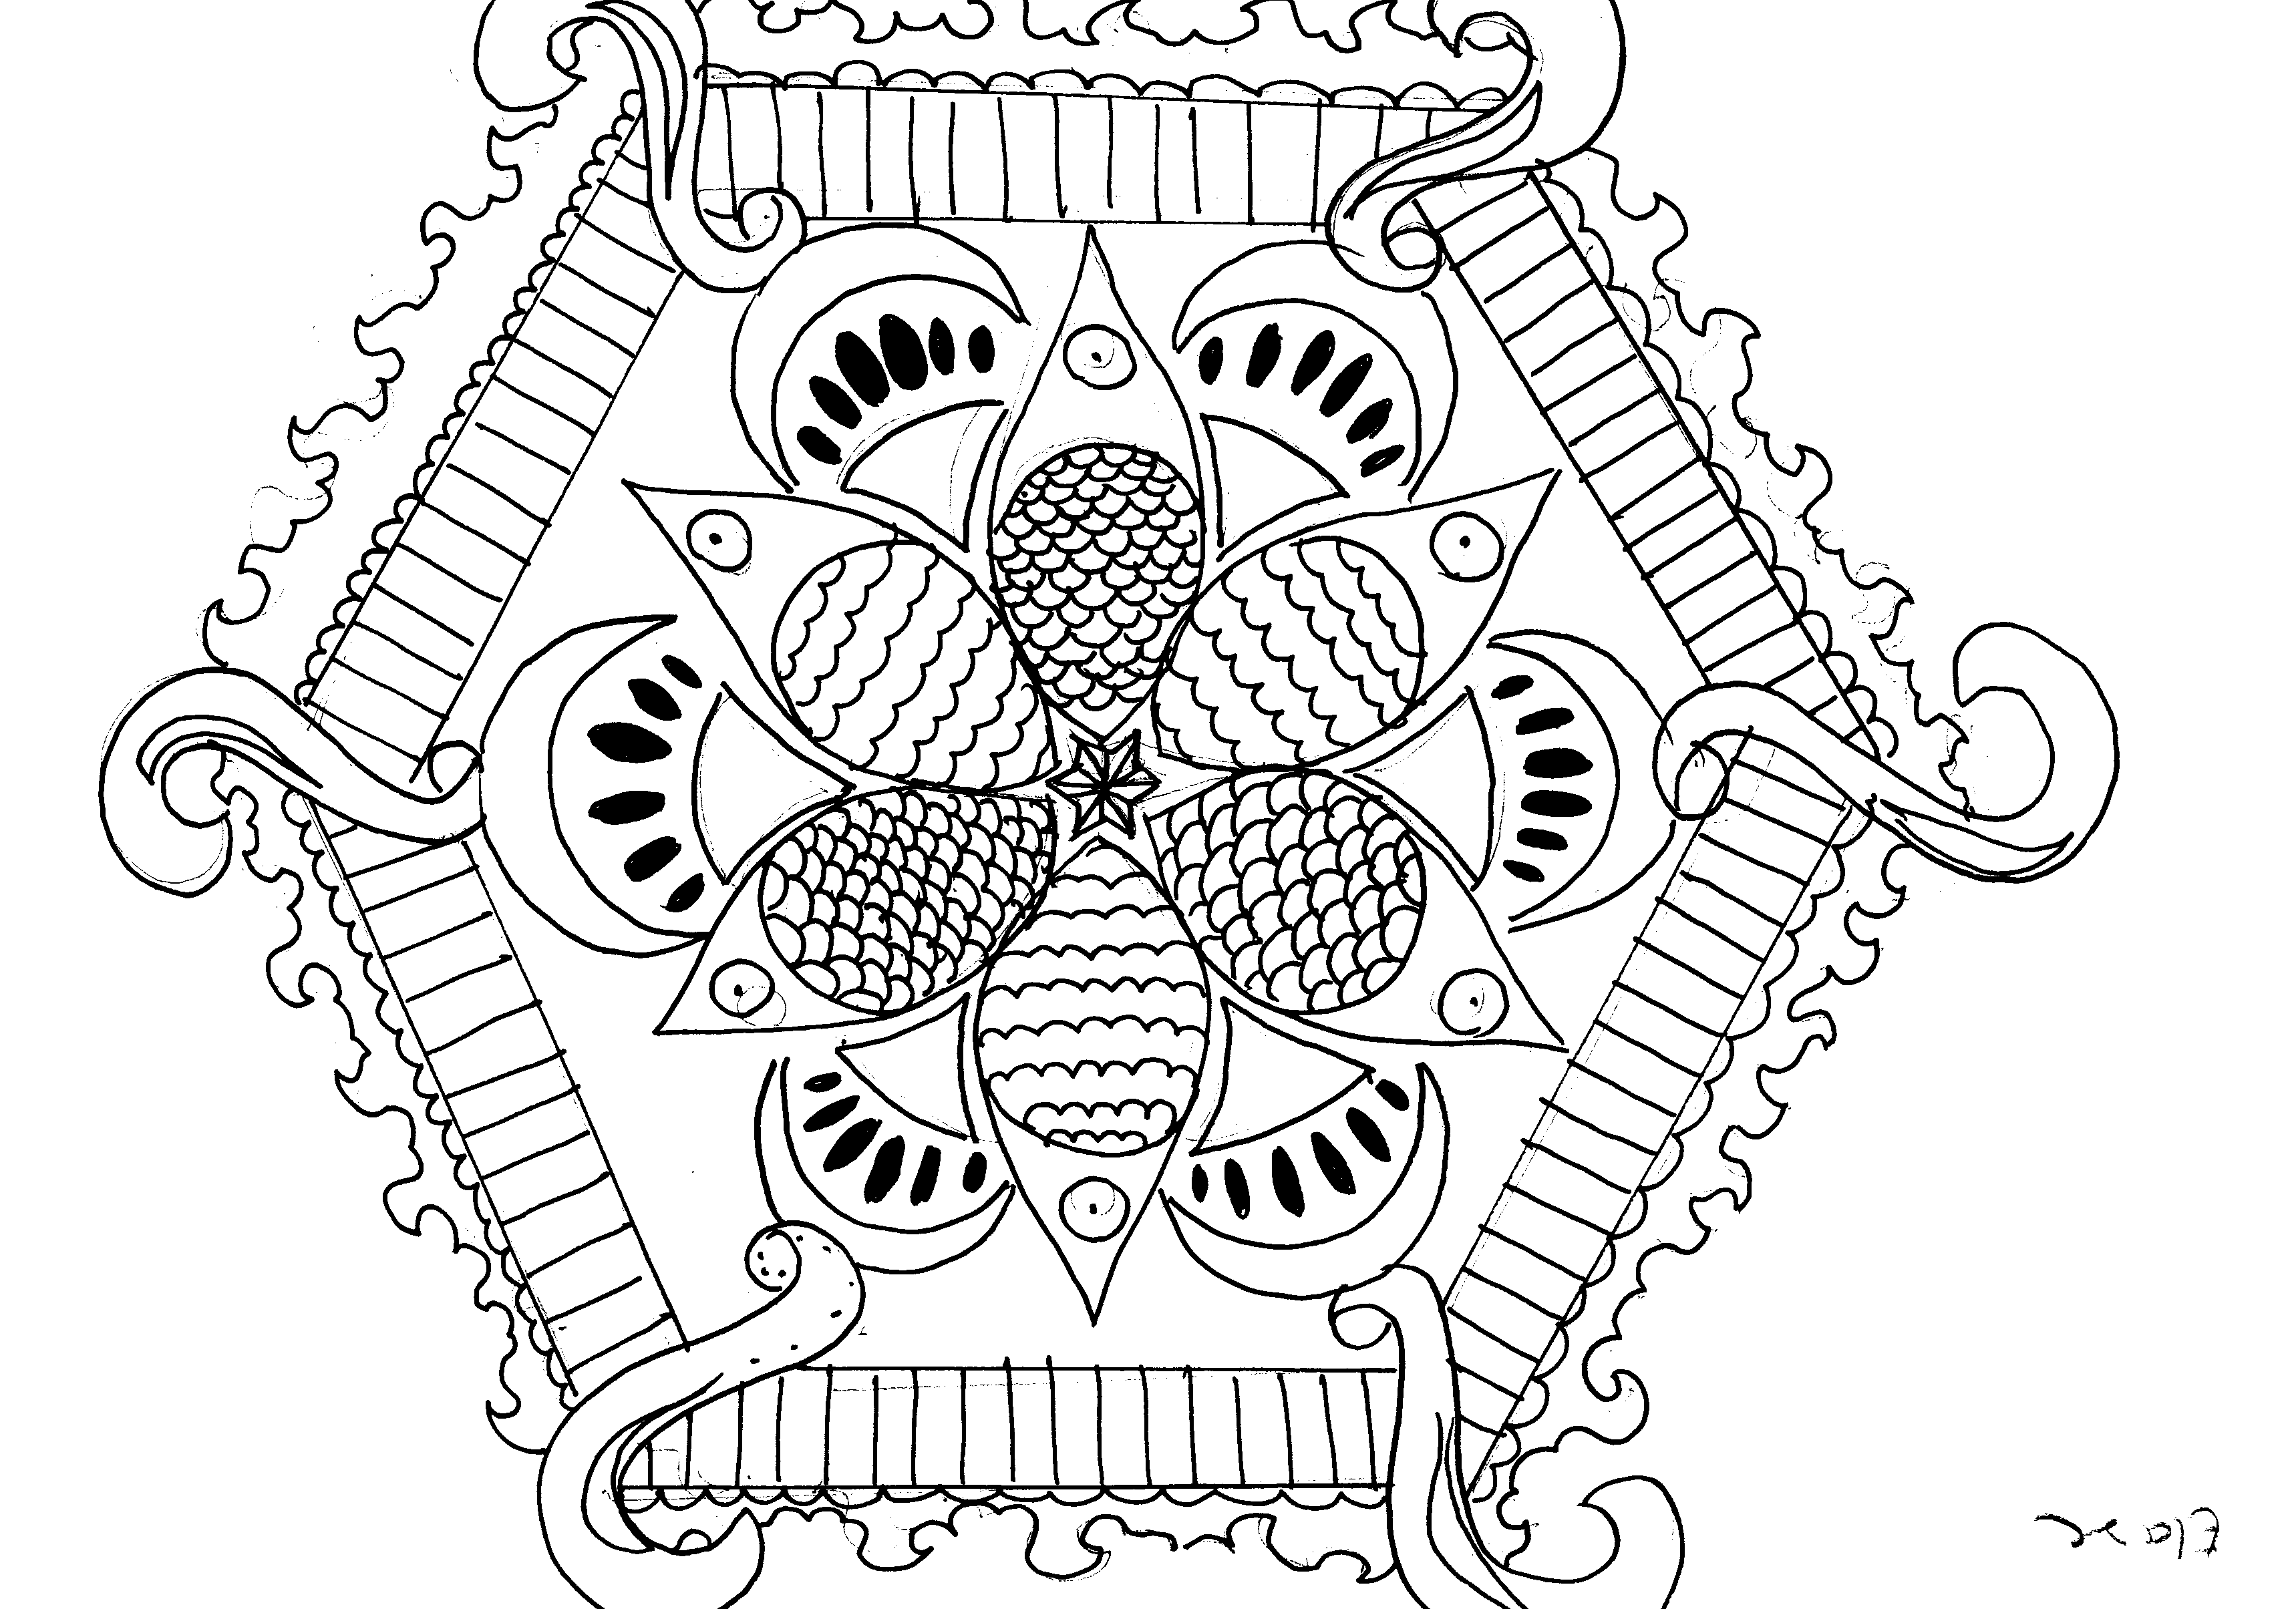 colouring pages « EvAntArt